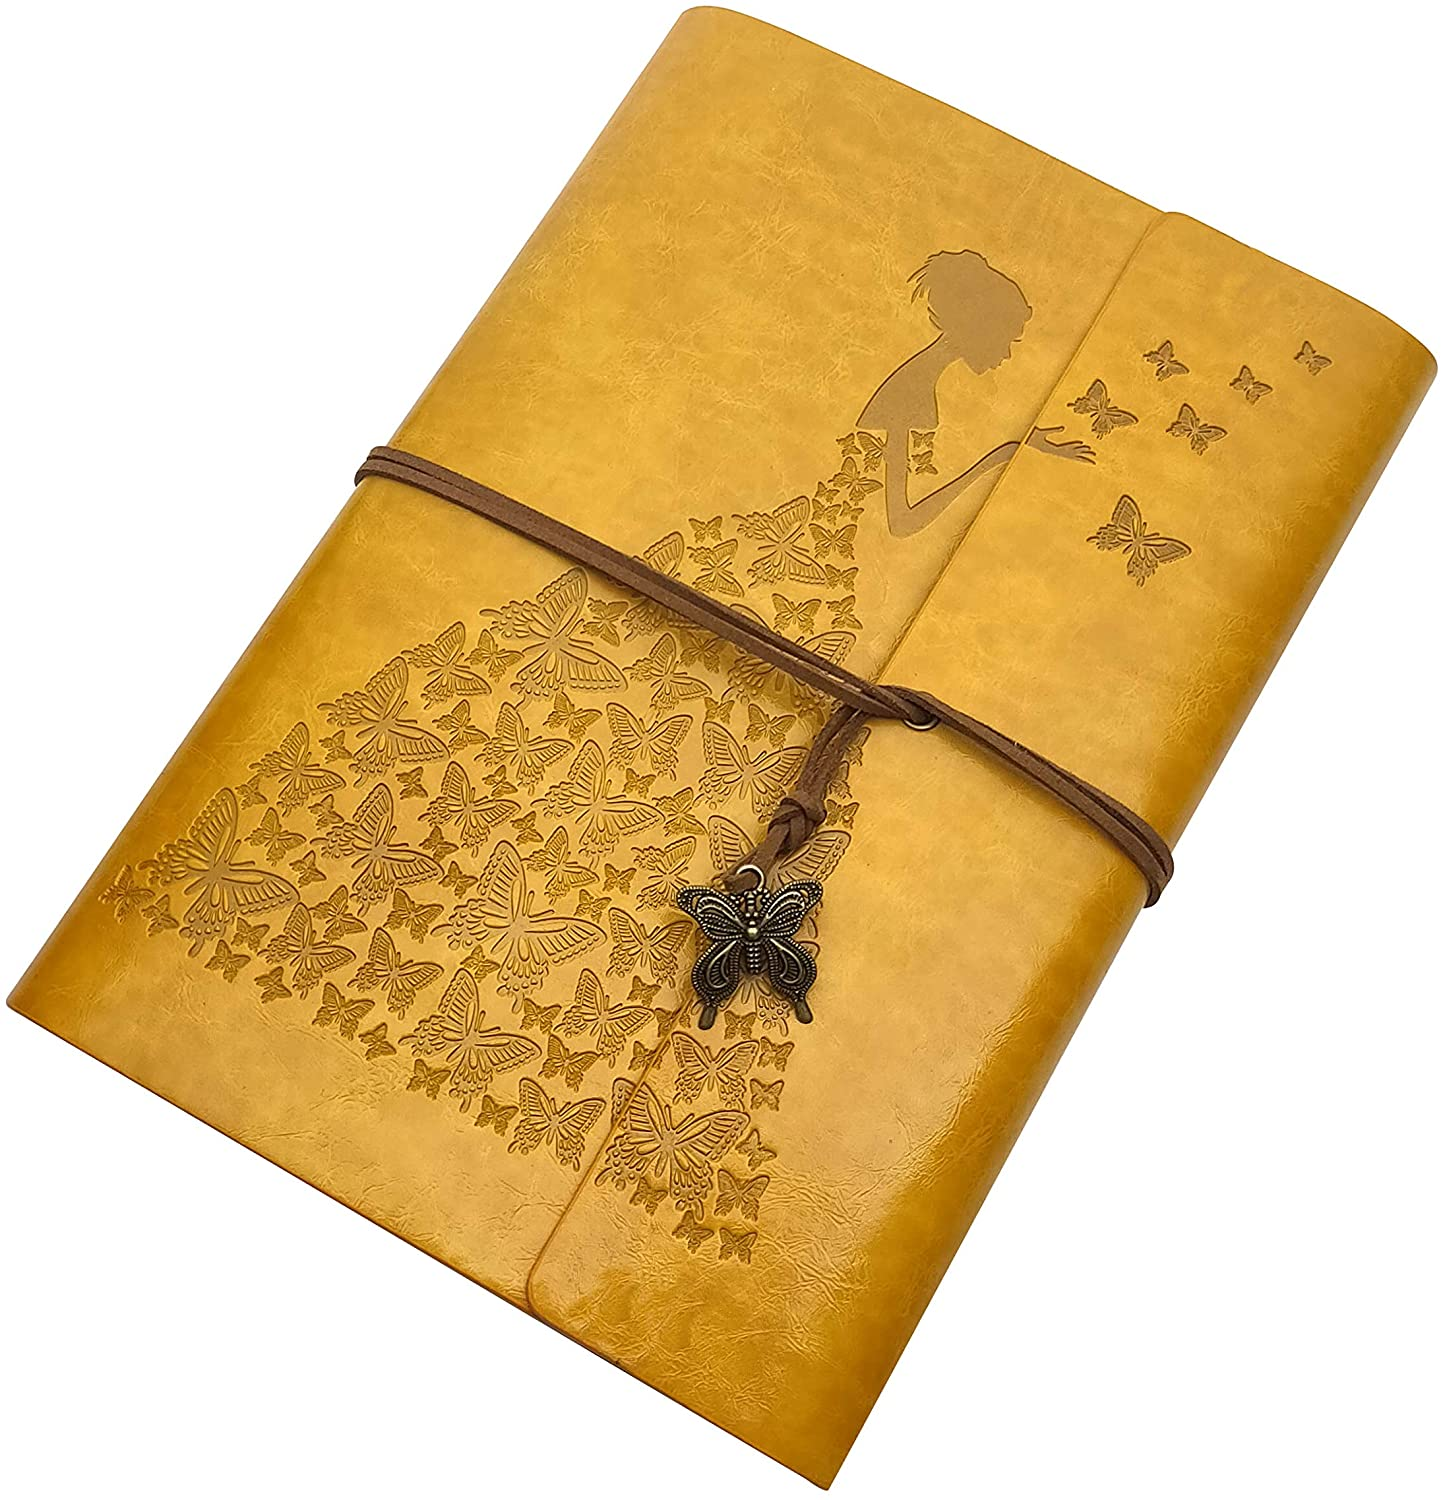 Butterfly Journal Leather Refillable Notebook Premium Retro Spiral Notebook Classic Binder Vintage Embossed Travelers Journal for Art Sketch Travel Diary and Journal Records(Golden Yellow, A5)…